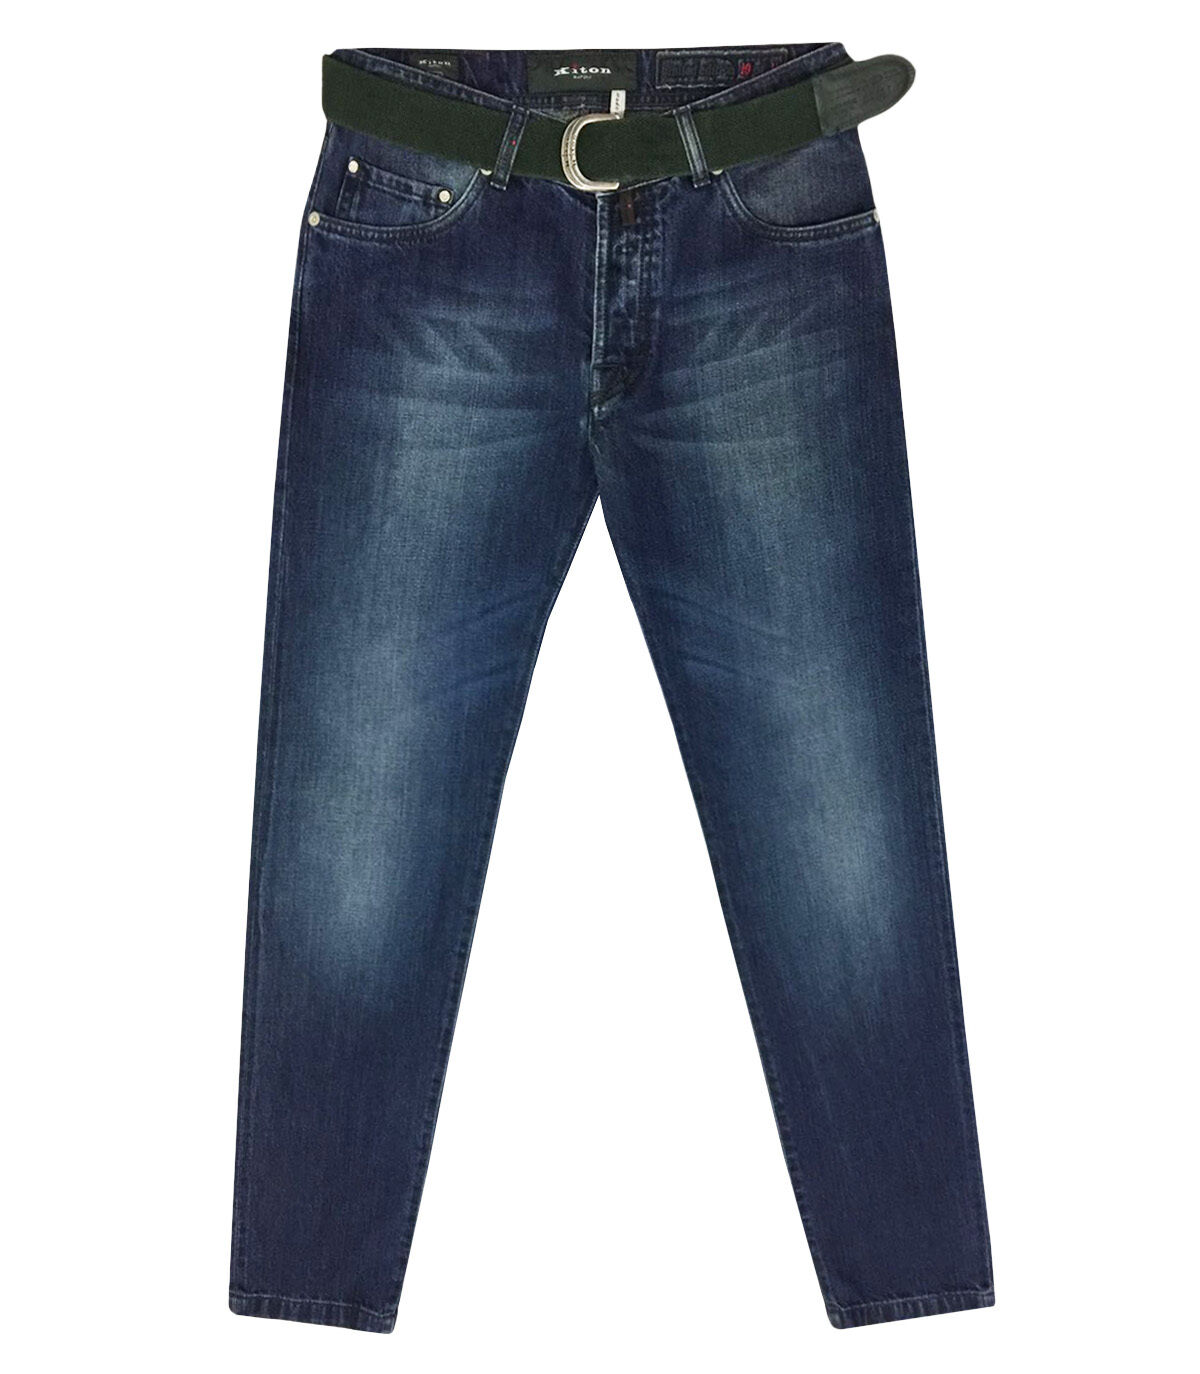 Kiton Men's bluee Cotton Jeans with Logo patch & Belt Size 40, Free Shipping